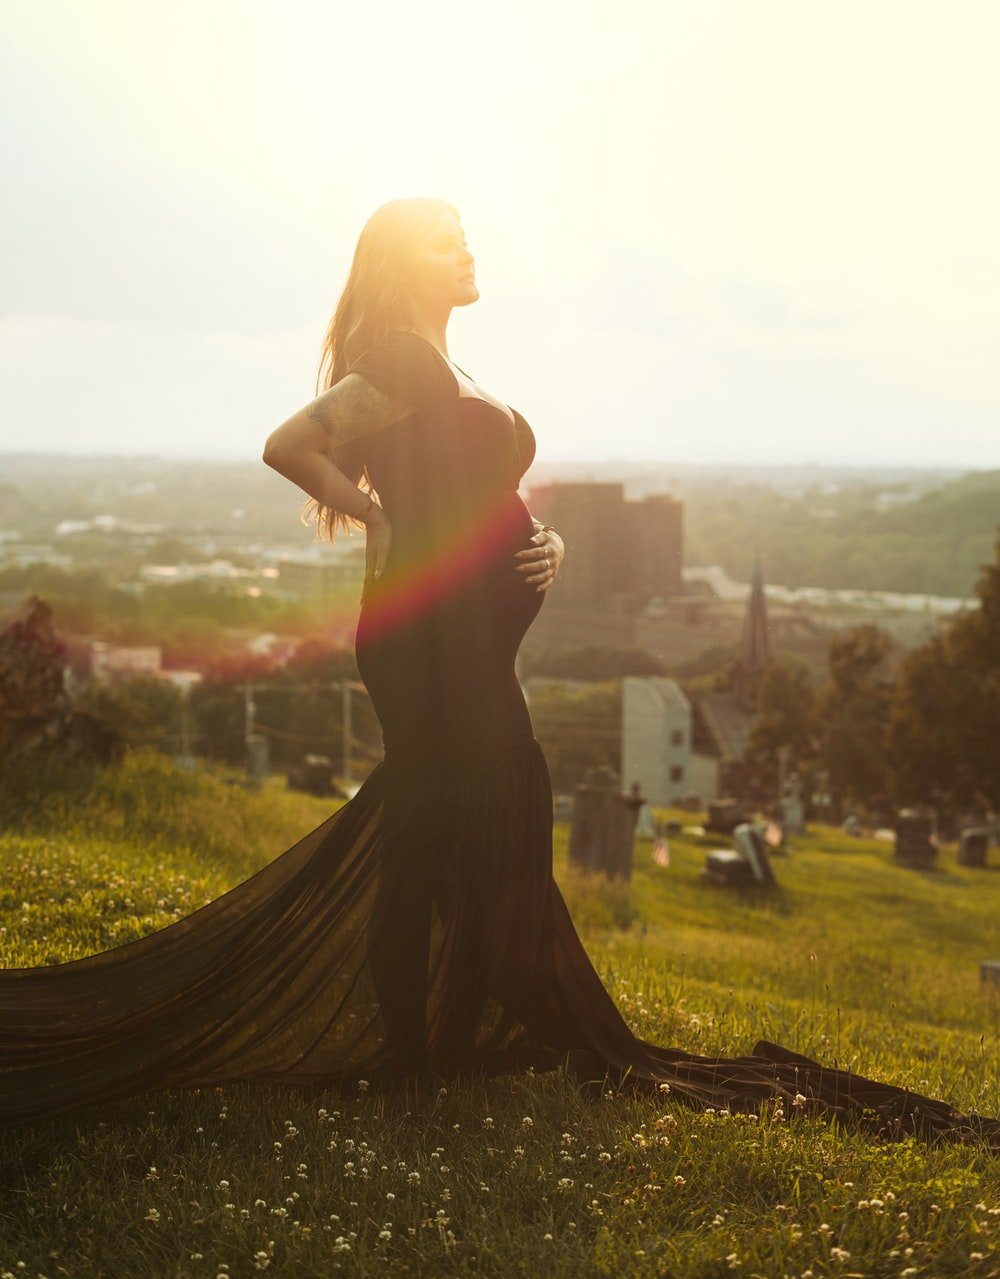 woman in black dress standing on green grass field during daytime